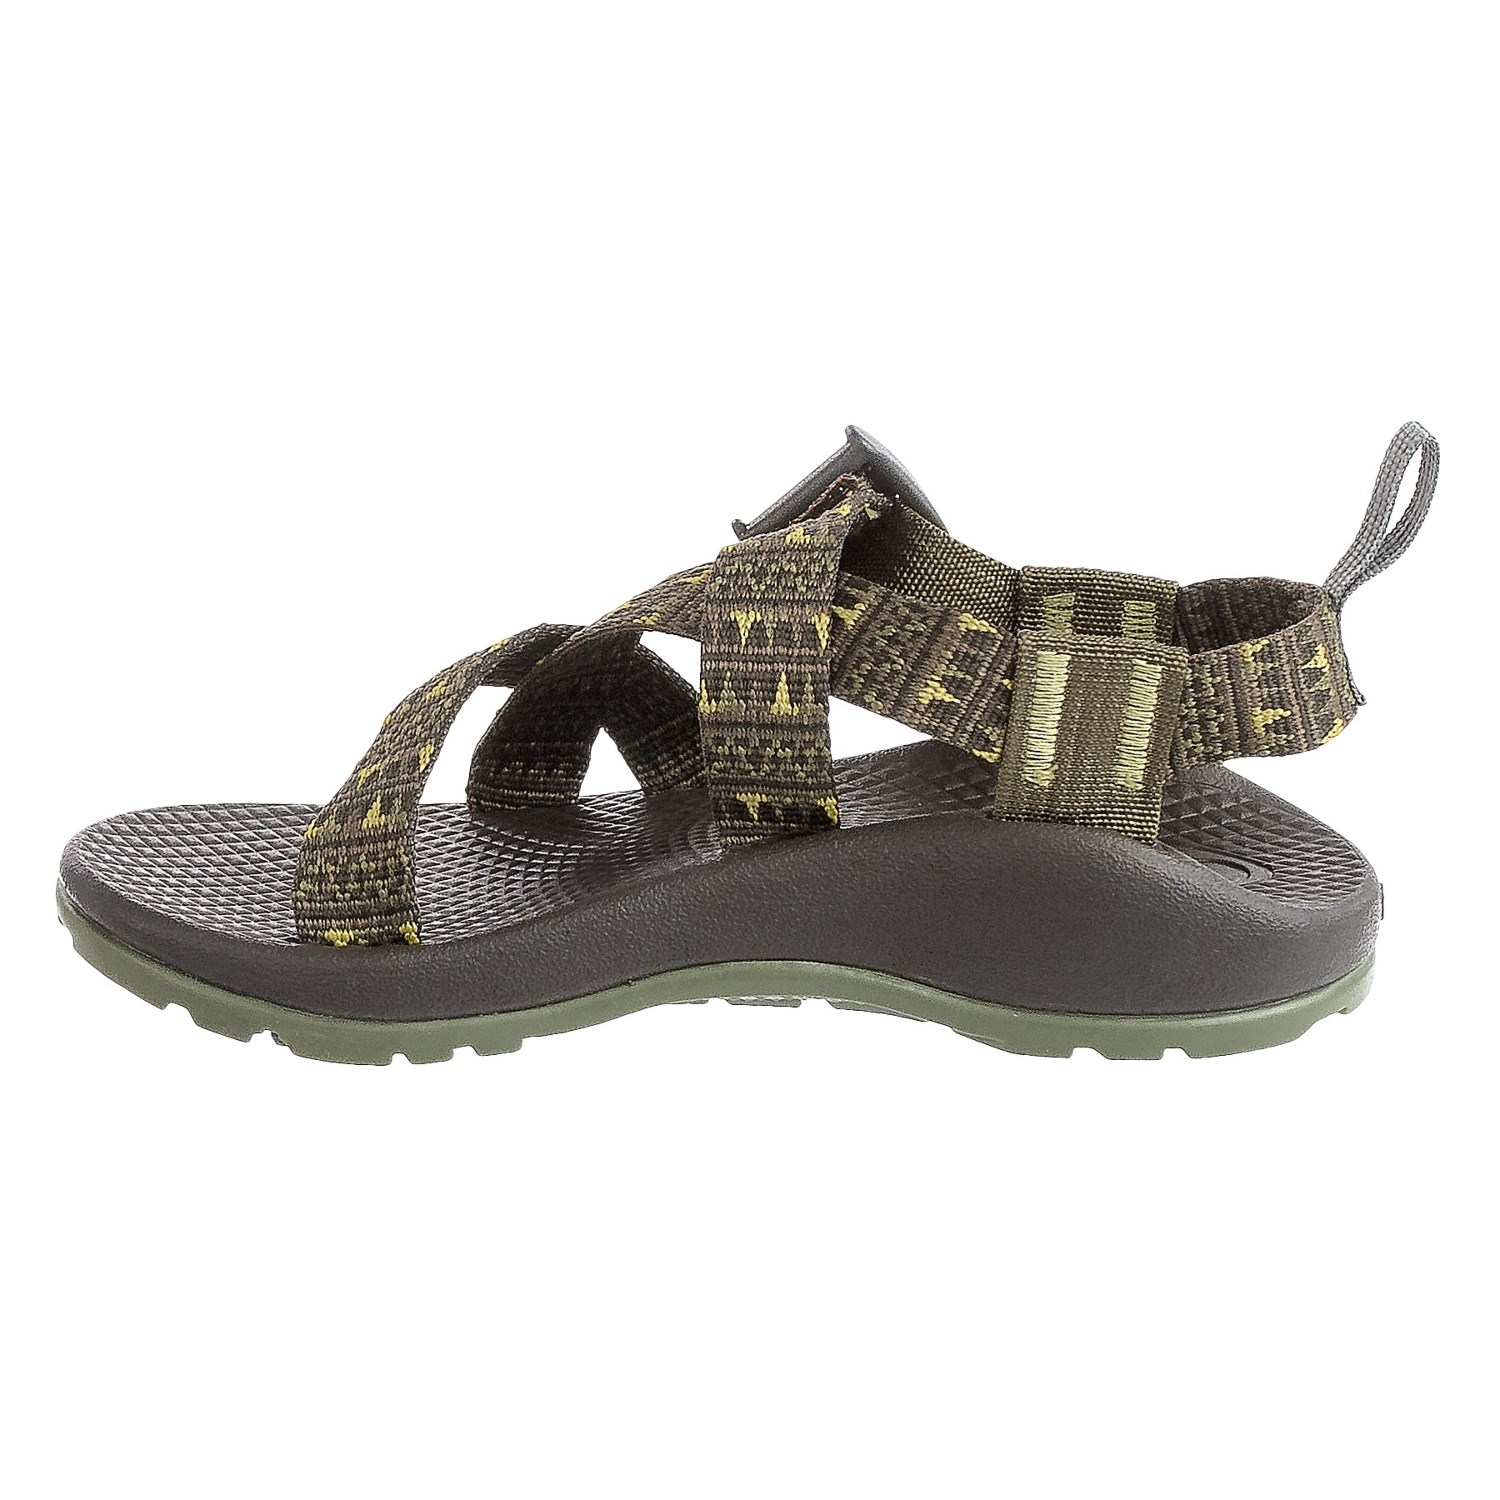 60979ad7125 Chaco Z1 EcoTread Sandals (For Little and Big Kids) - Save 45%